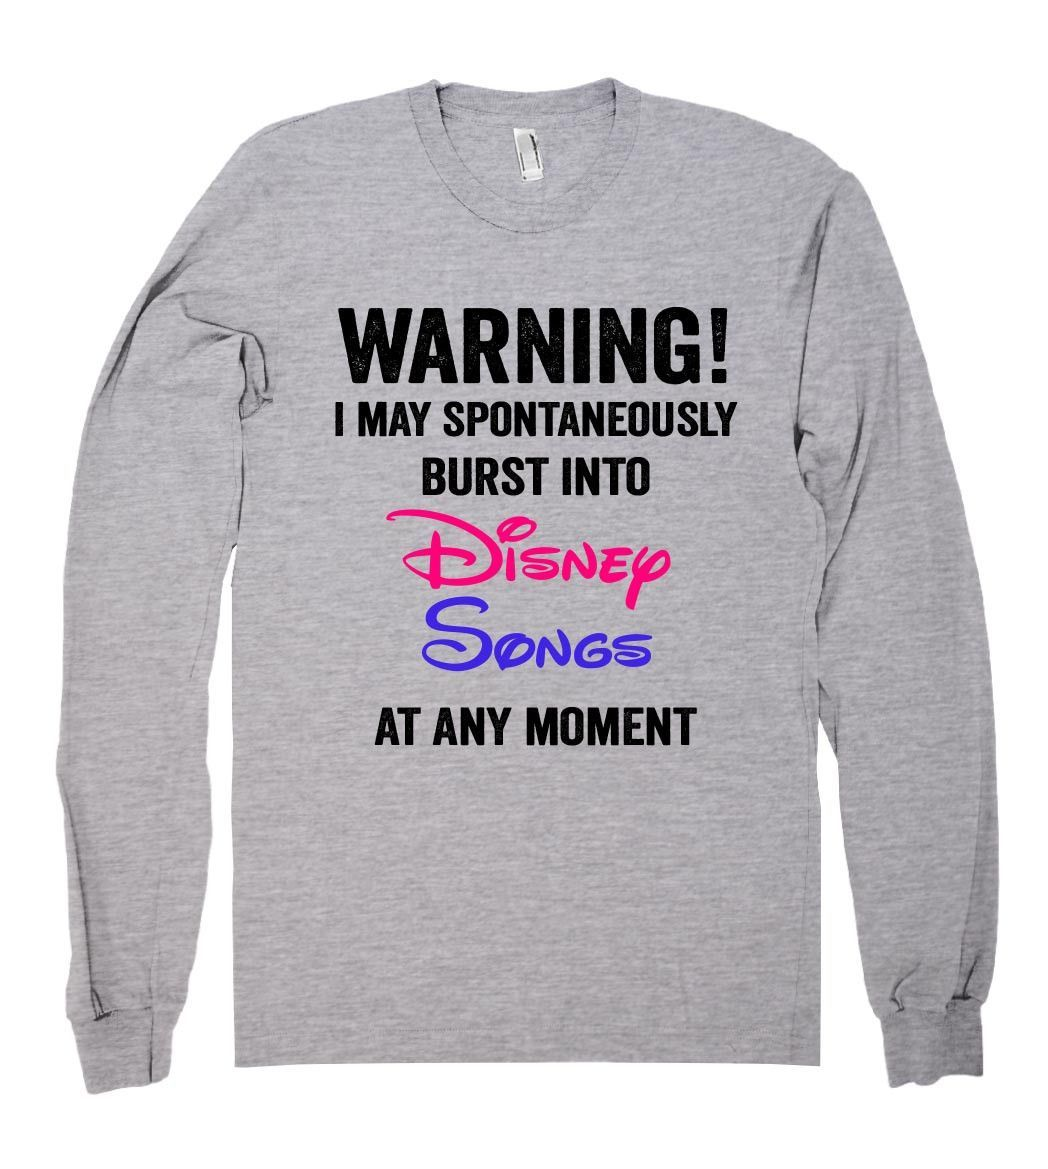 I May Spontaneously Burst Into Disney Songs At Any Moment Shirt Disney Songs Funny Shirts Funny Outfits